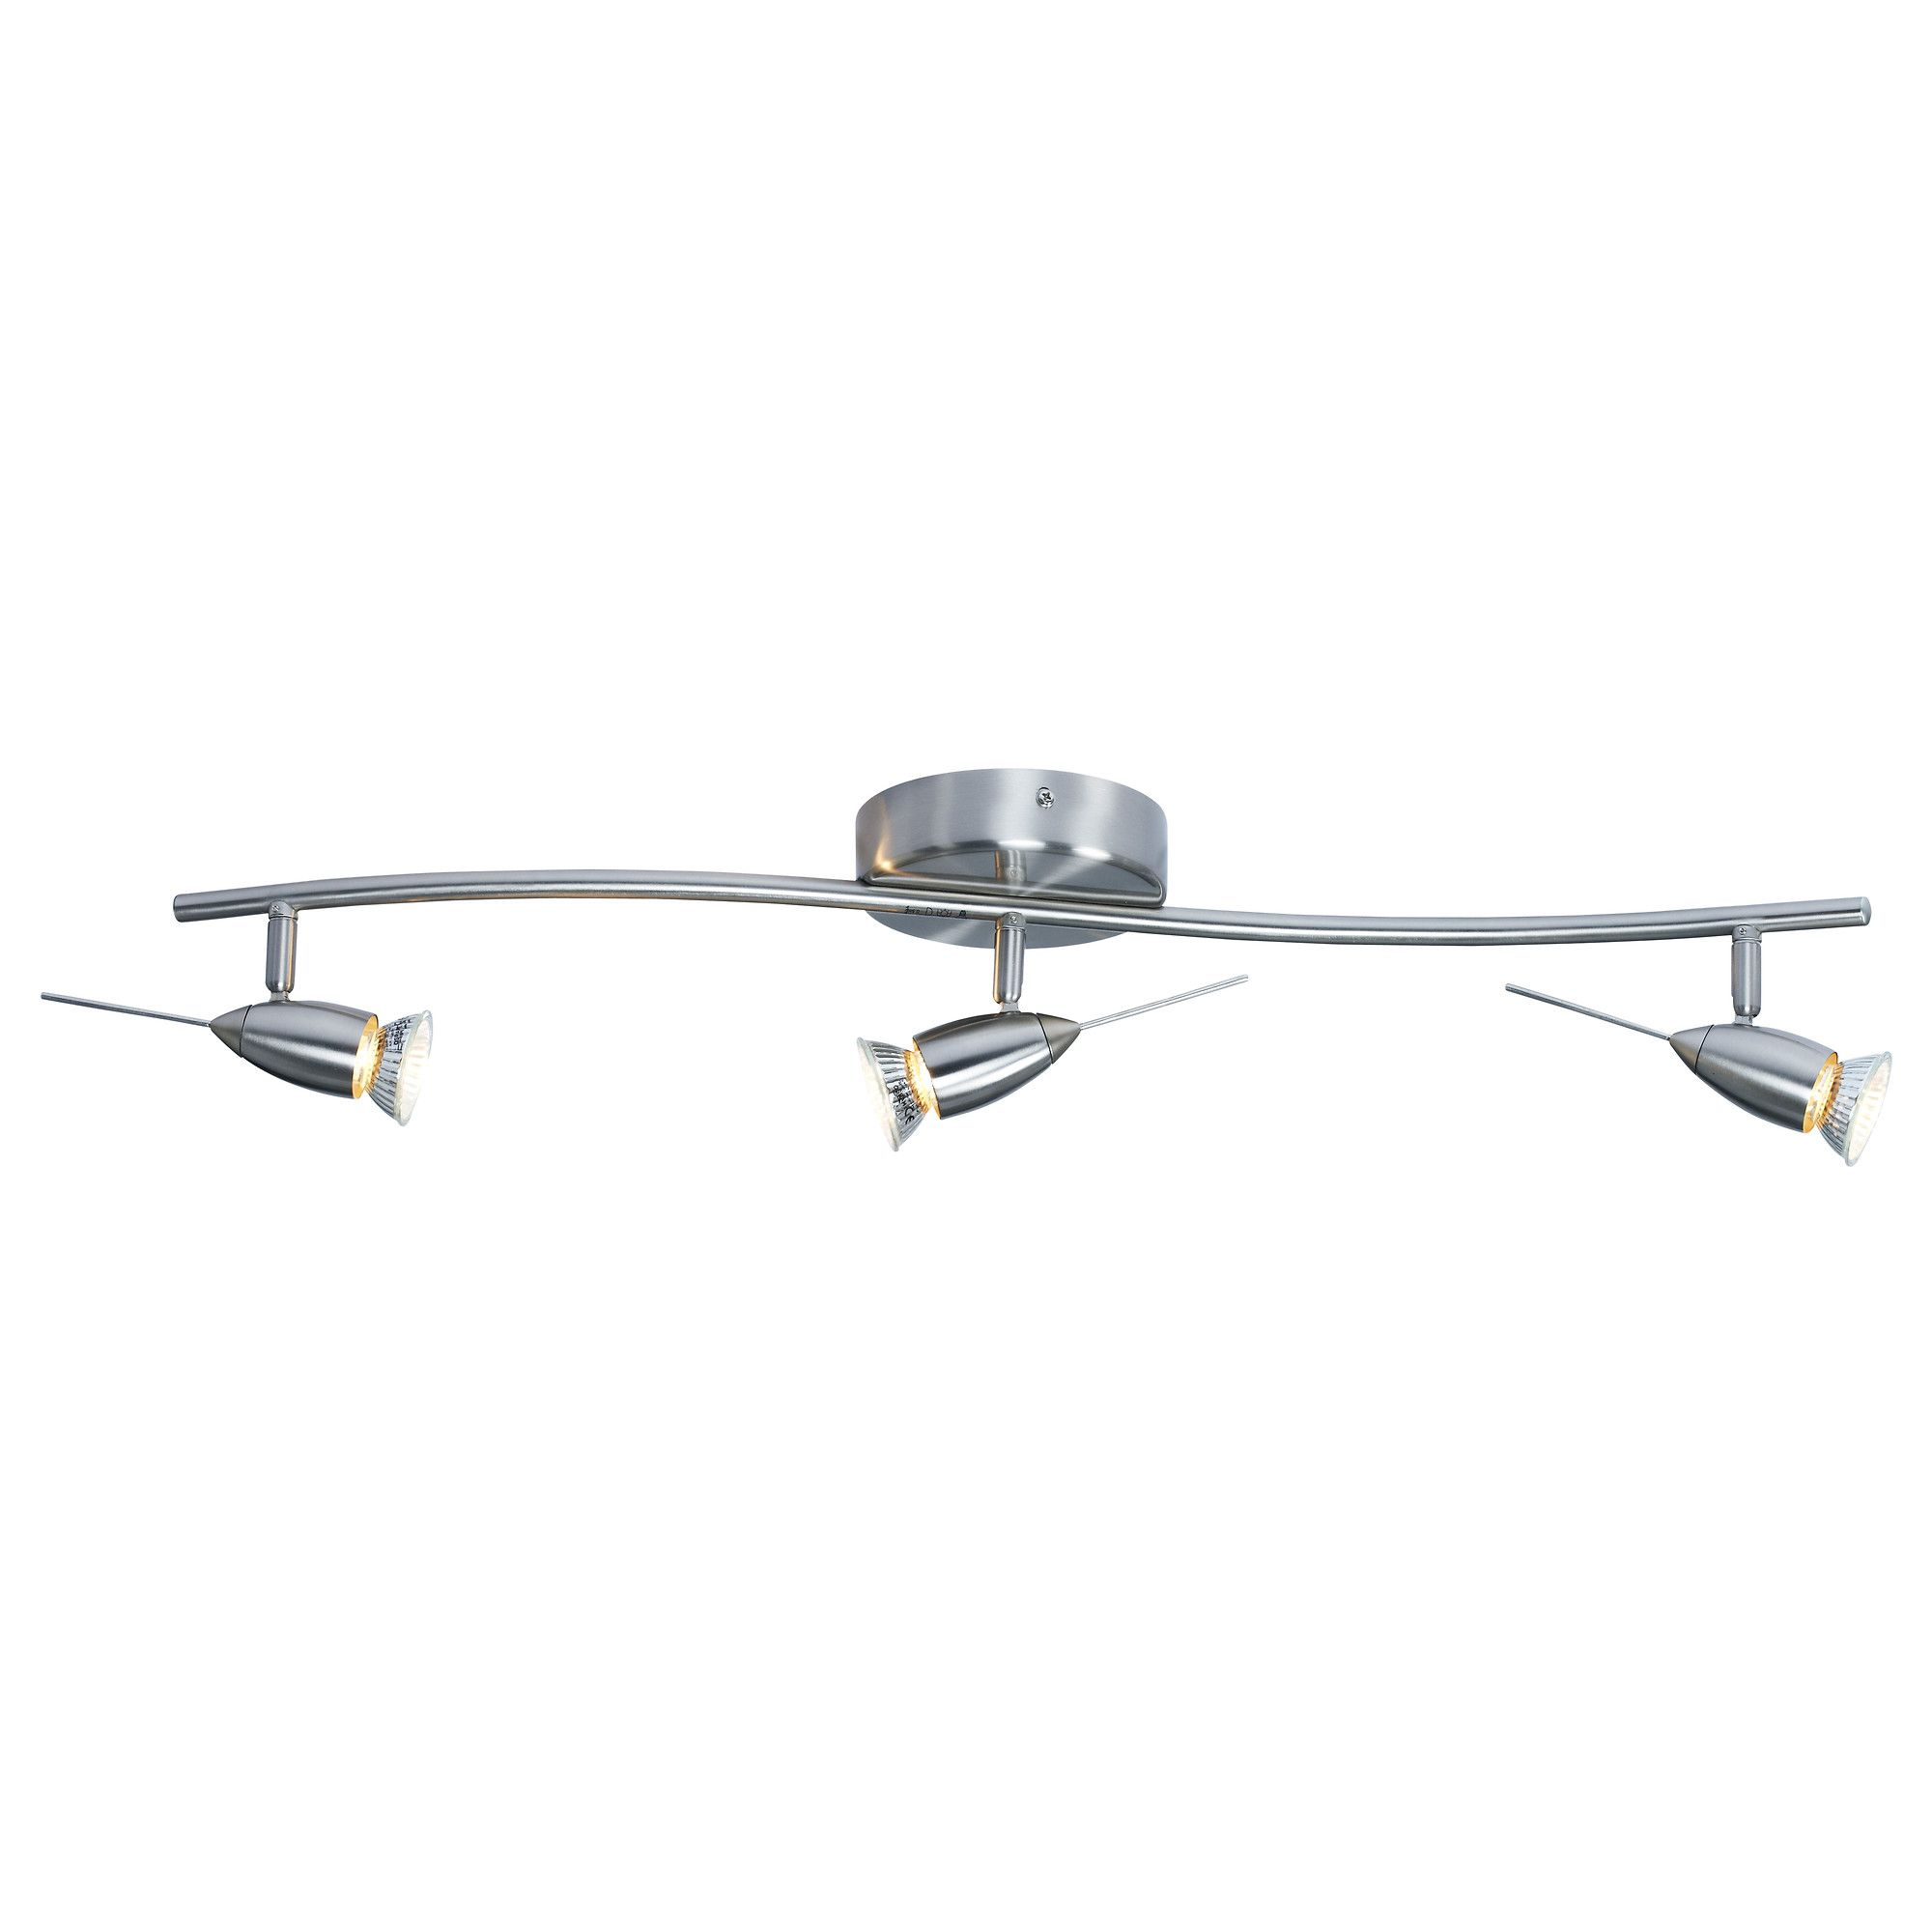 flexible track lighting ikea. Replace The Kitchen Lighting: LEDING Ceiling Track, 3 Spotlights IKEA Adjustable Can Be Turned Upwards Or Downwards. Flexible Track Lighting Ikea